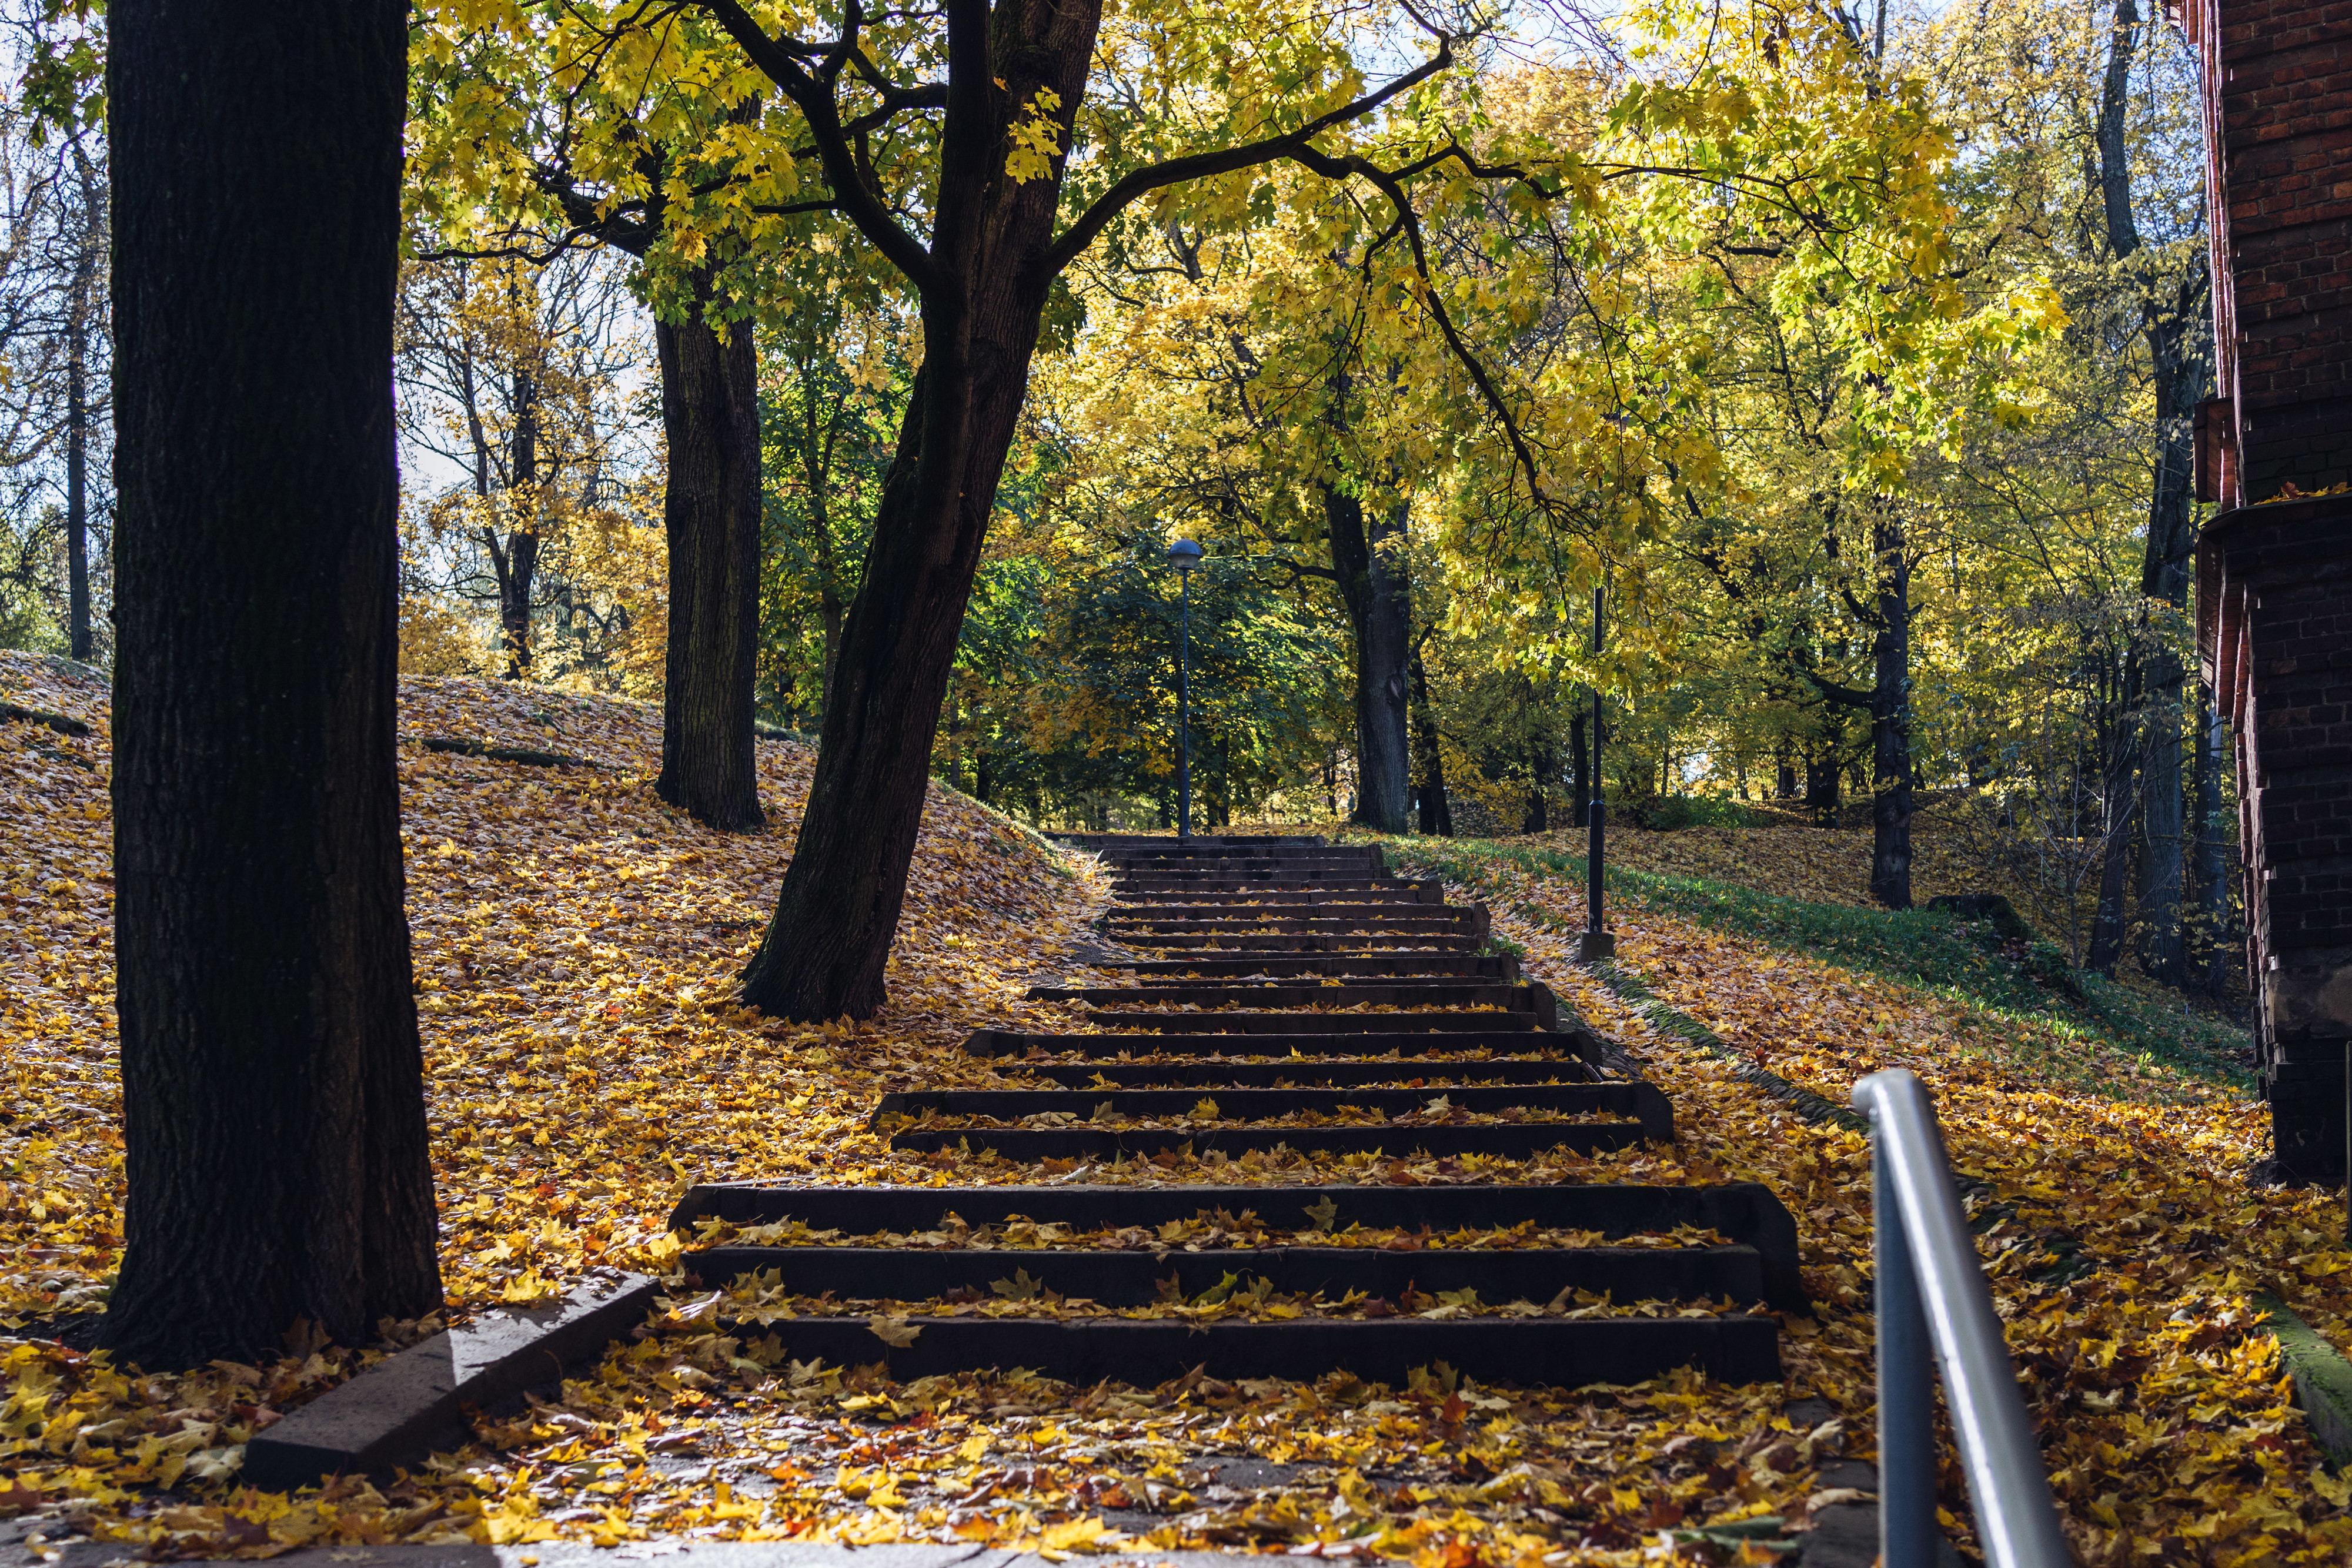 Toome, Tartu. Then the leaves start to turn in tides – the golden apex of the autumn is upon us. A dreadful time for all the diligent park supervisors who try to mitigate everyone's awe with their gasoline-powered leaf blowers. That's the actual beginning of the autumn –  the first loud scream of the first blower when first yellow leaf falls from in the park.